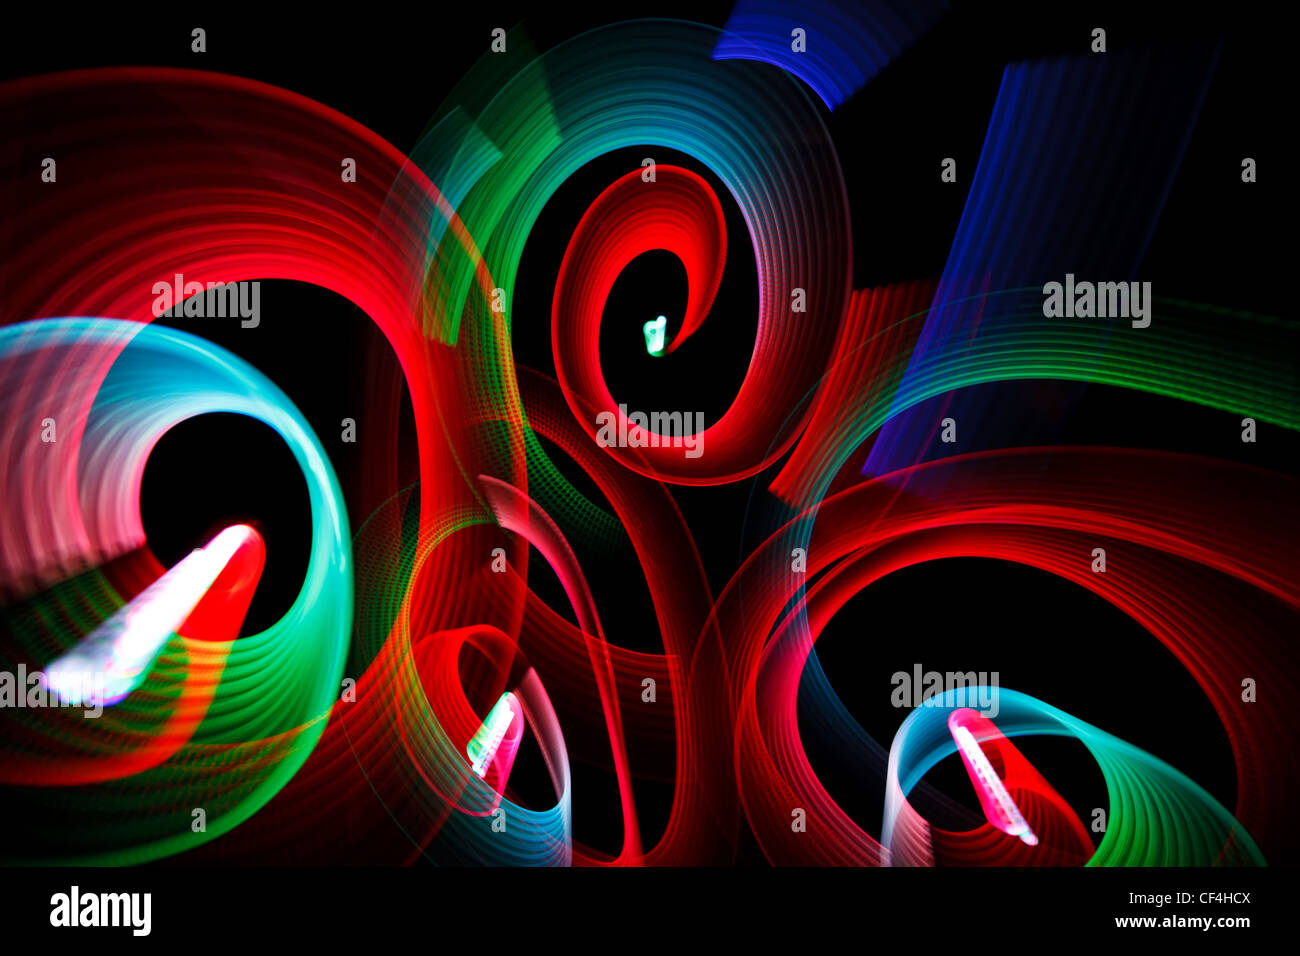 Abstract luminous patterns in form of spirals on black background. - Stock Image